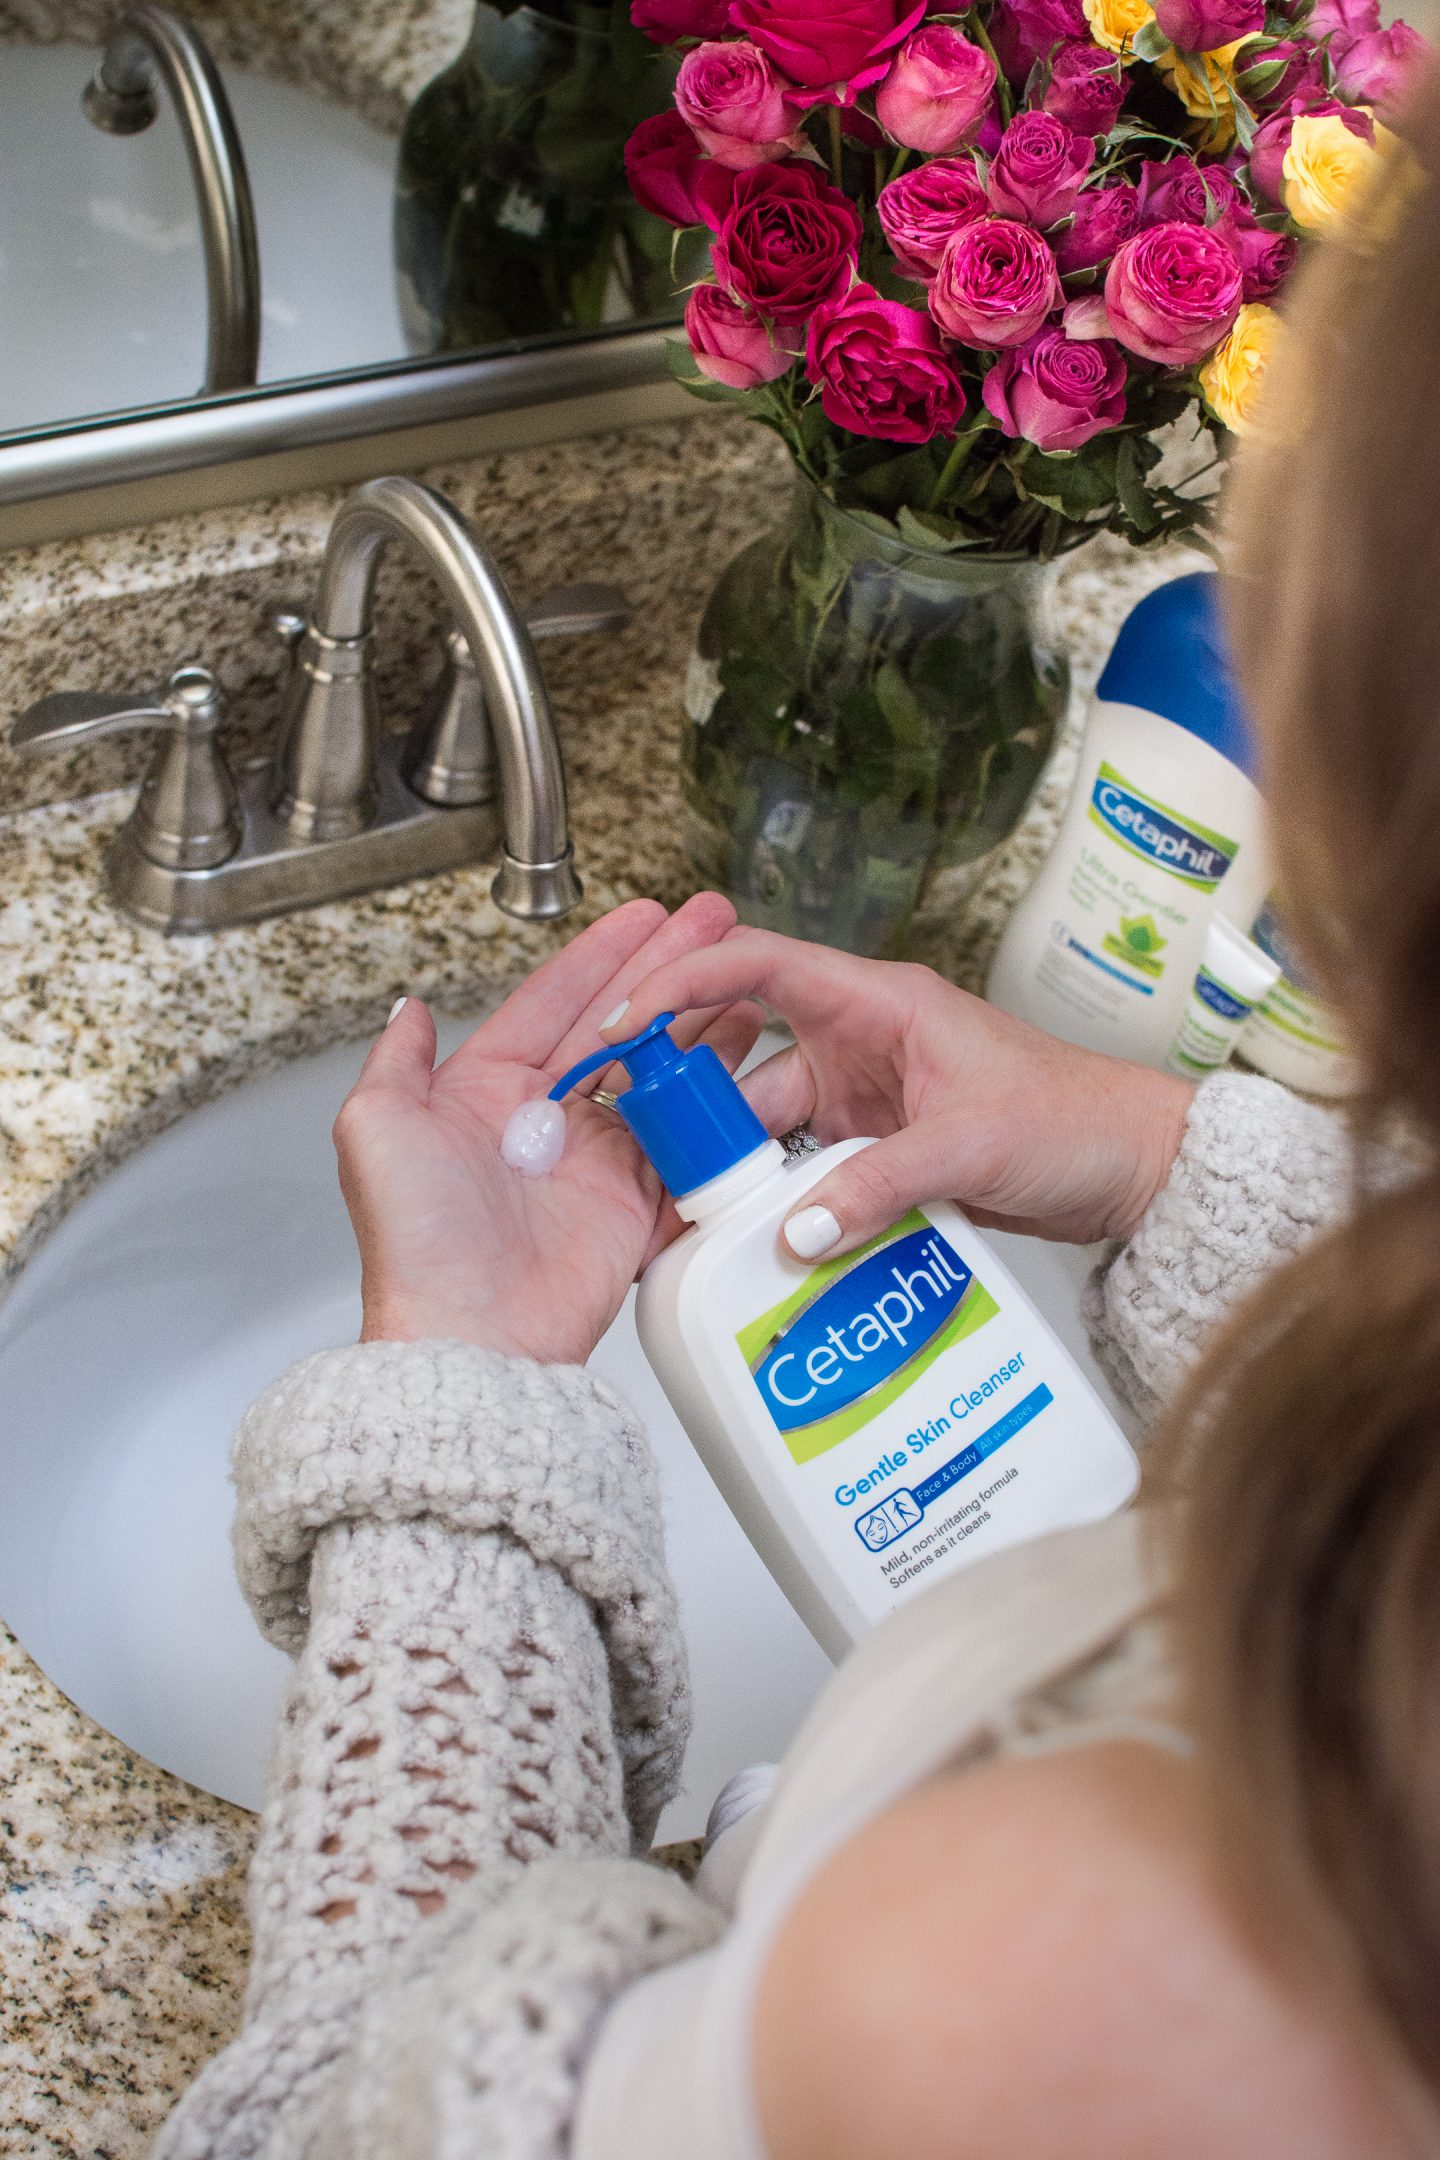 cetaphil self care, holy grailFinding Ways to Incorporate Me Time Into A Busy Day, cetaphil self care, holy grail skin care product that I cannot live without, anti aging skincare, skincare for the whole family skin care product that I cannot live without, anti aging skincare, skincare for the whole family